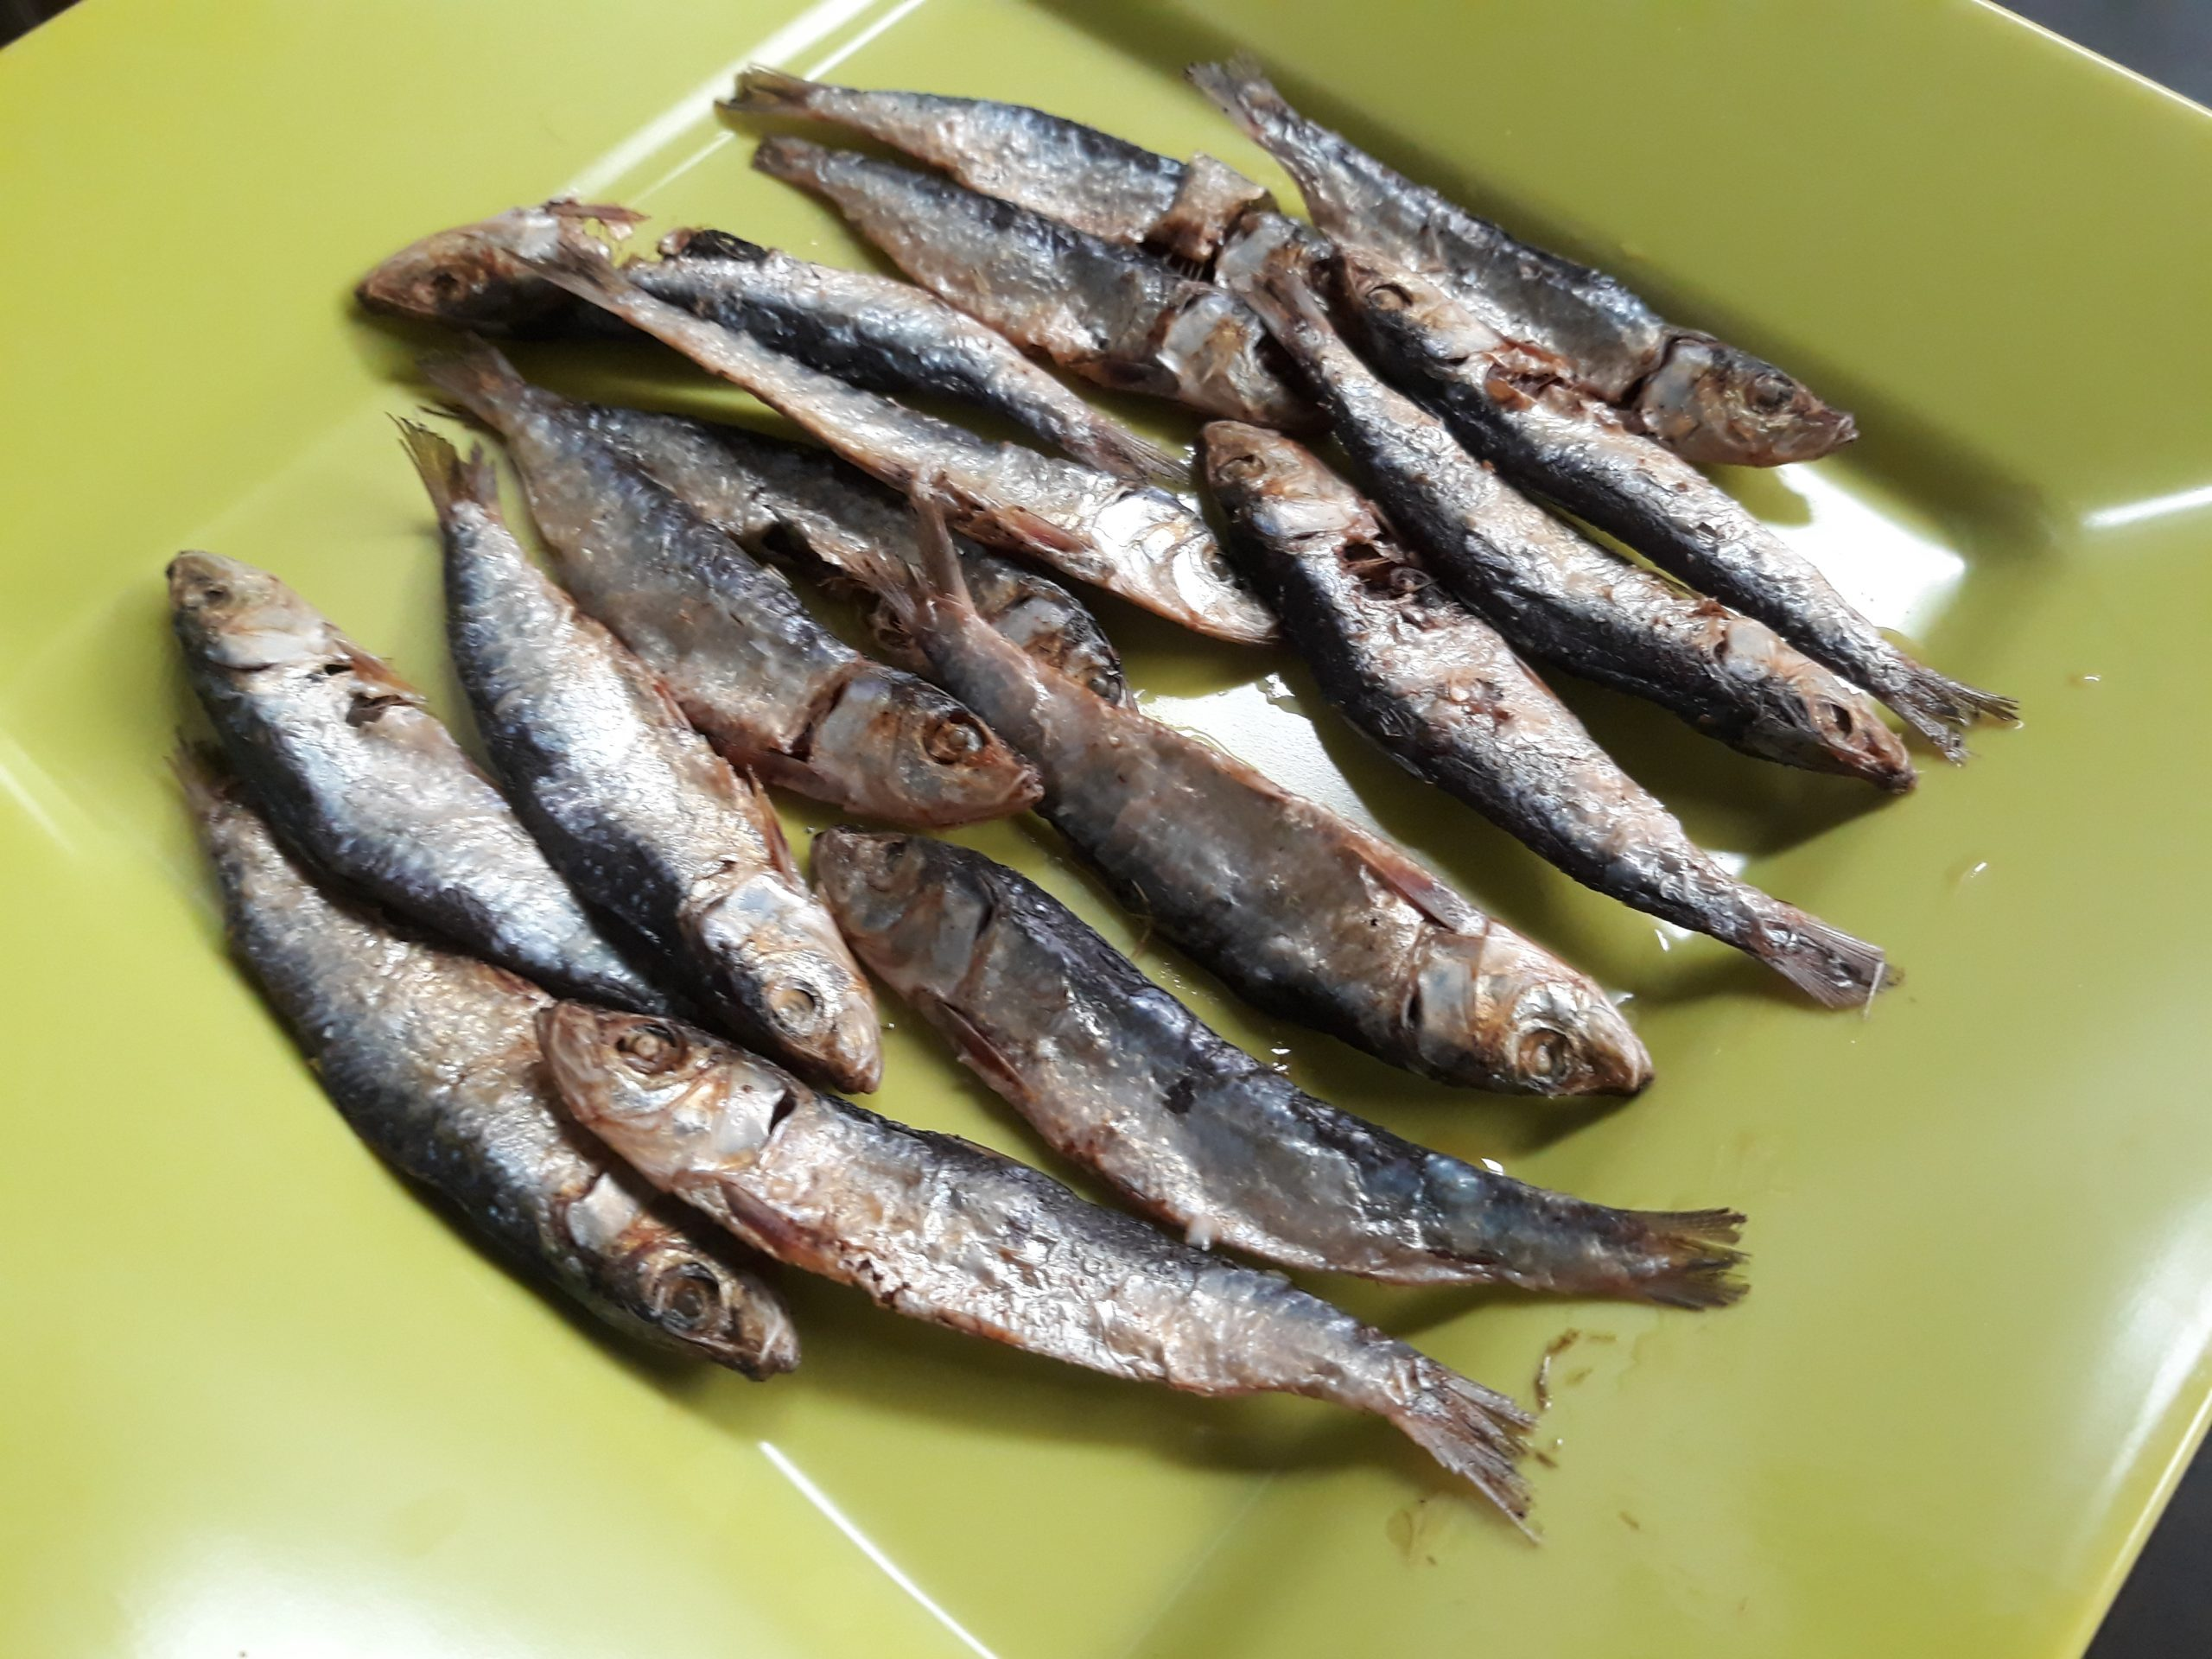 Pieces of dried fish arranged neatly on a green plate.